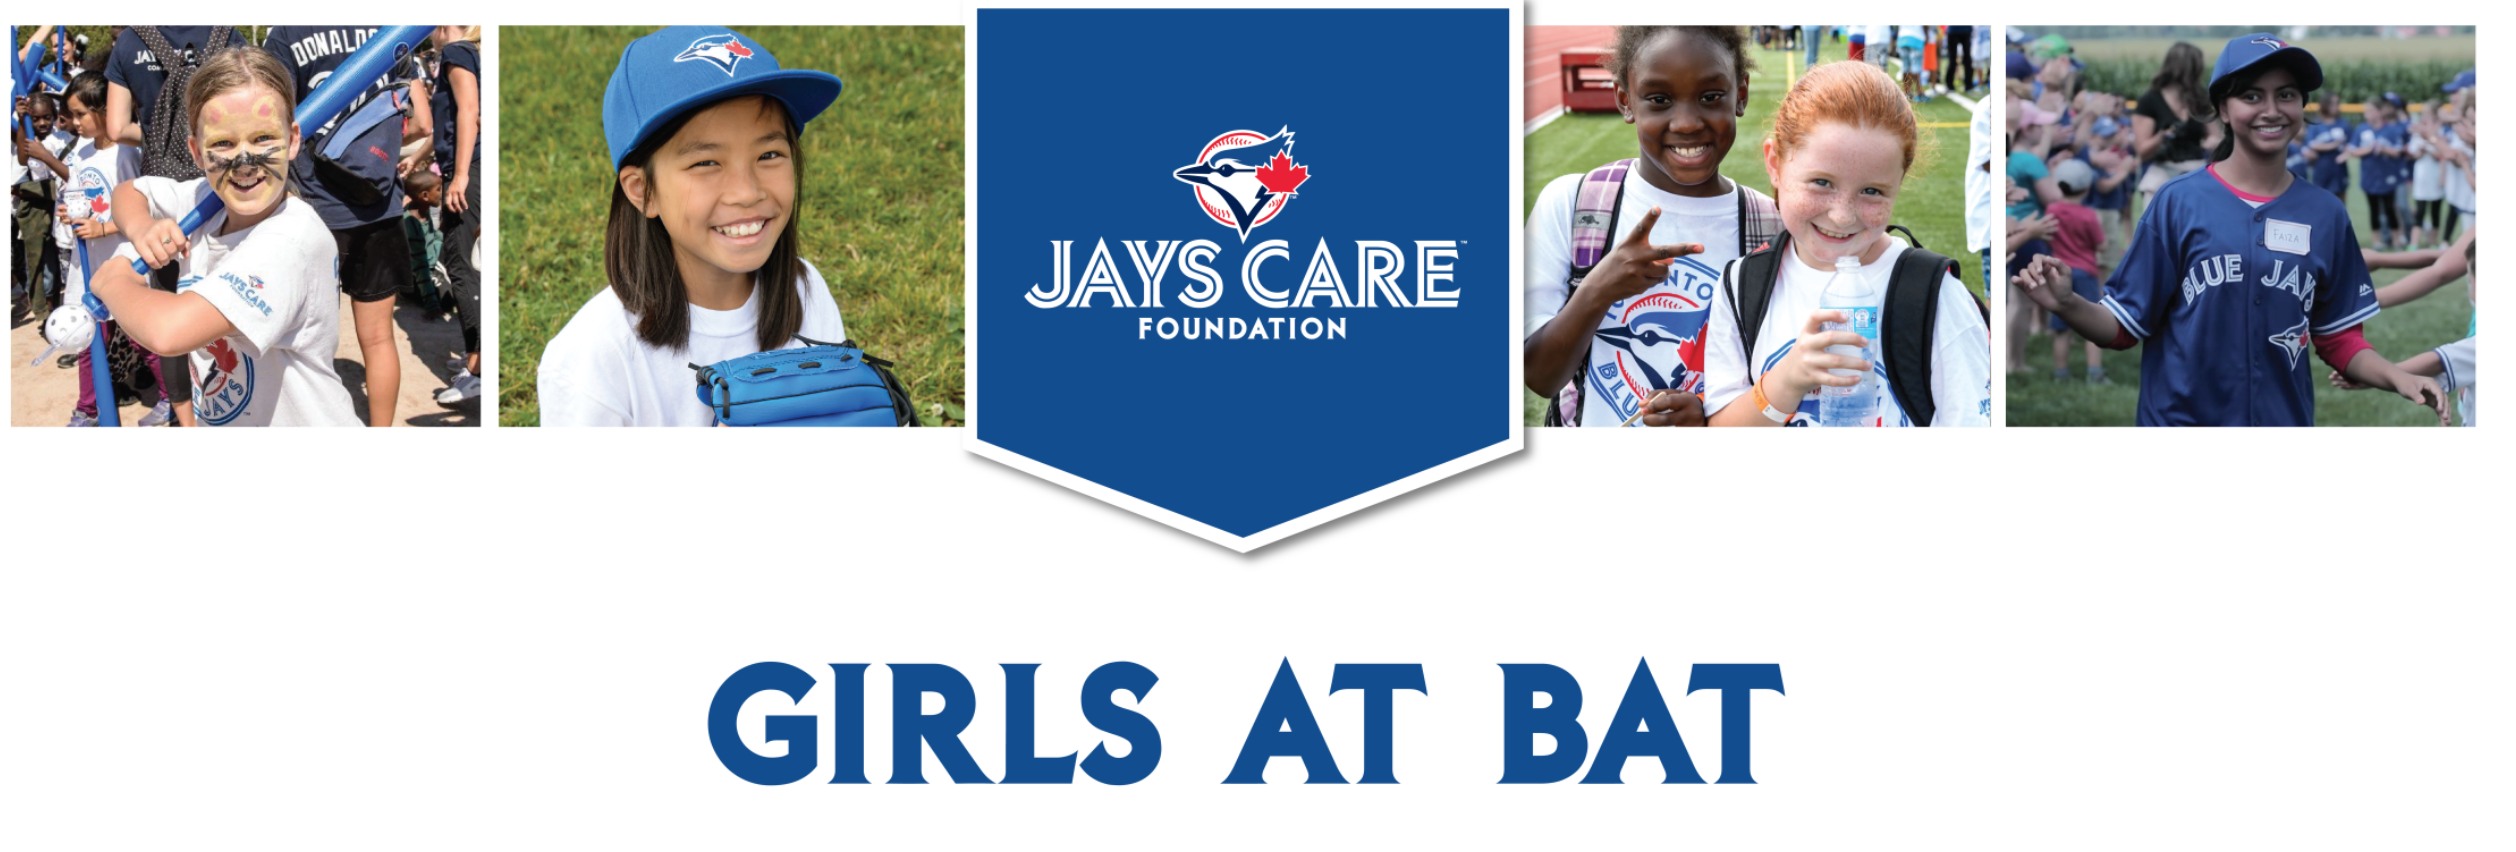 Jays Care to host a pair of Girls At Bat webinars